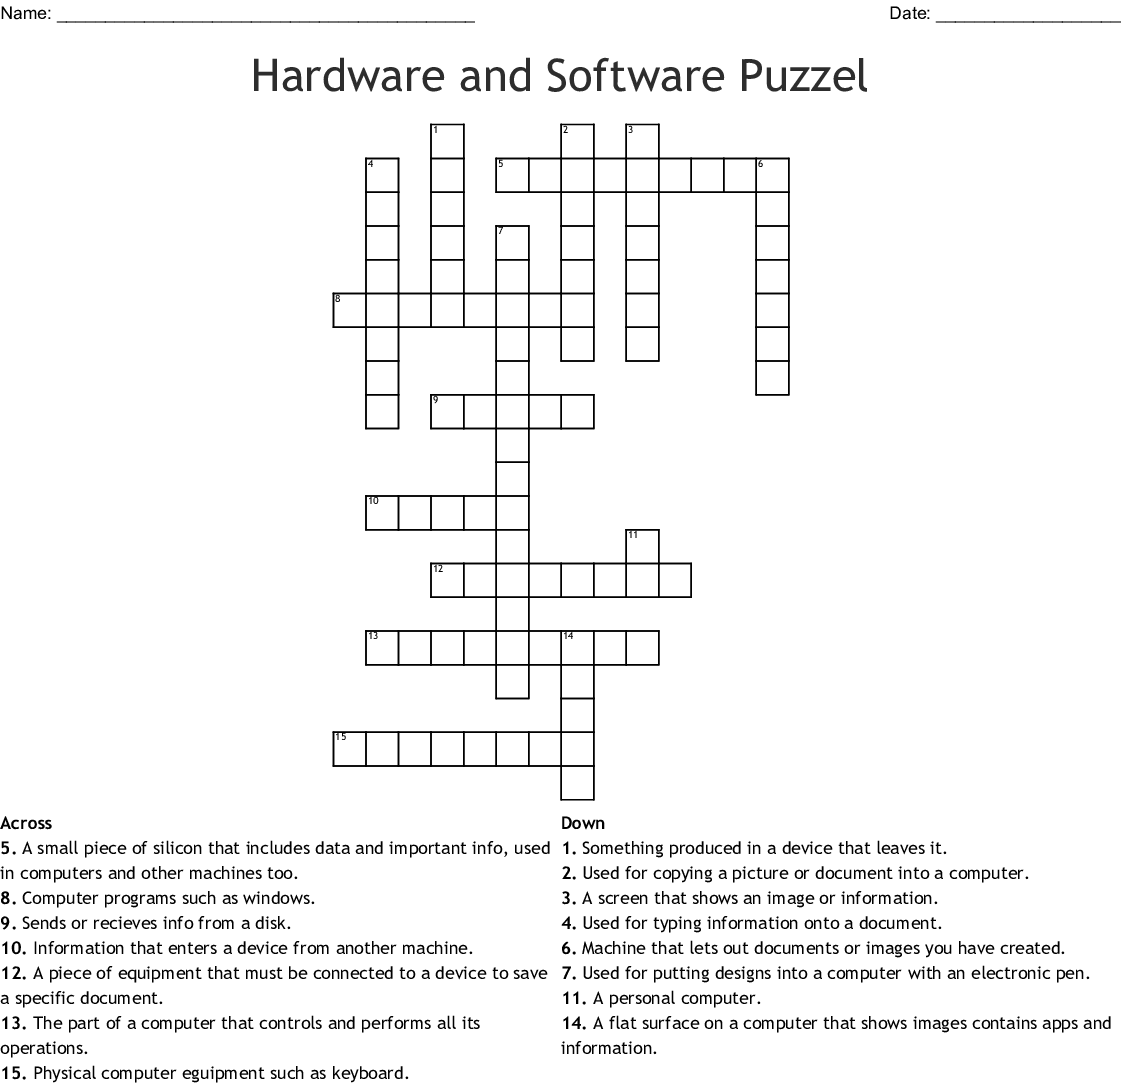 Computer Crossword Puzzle